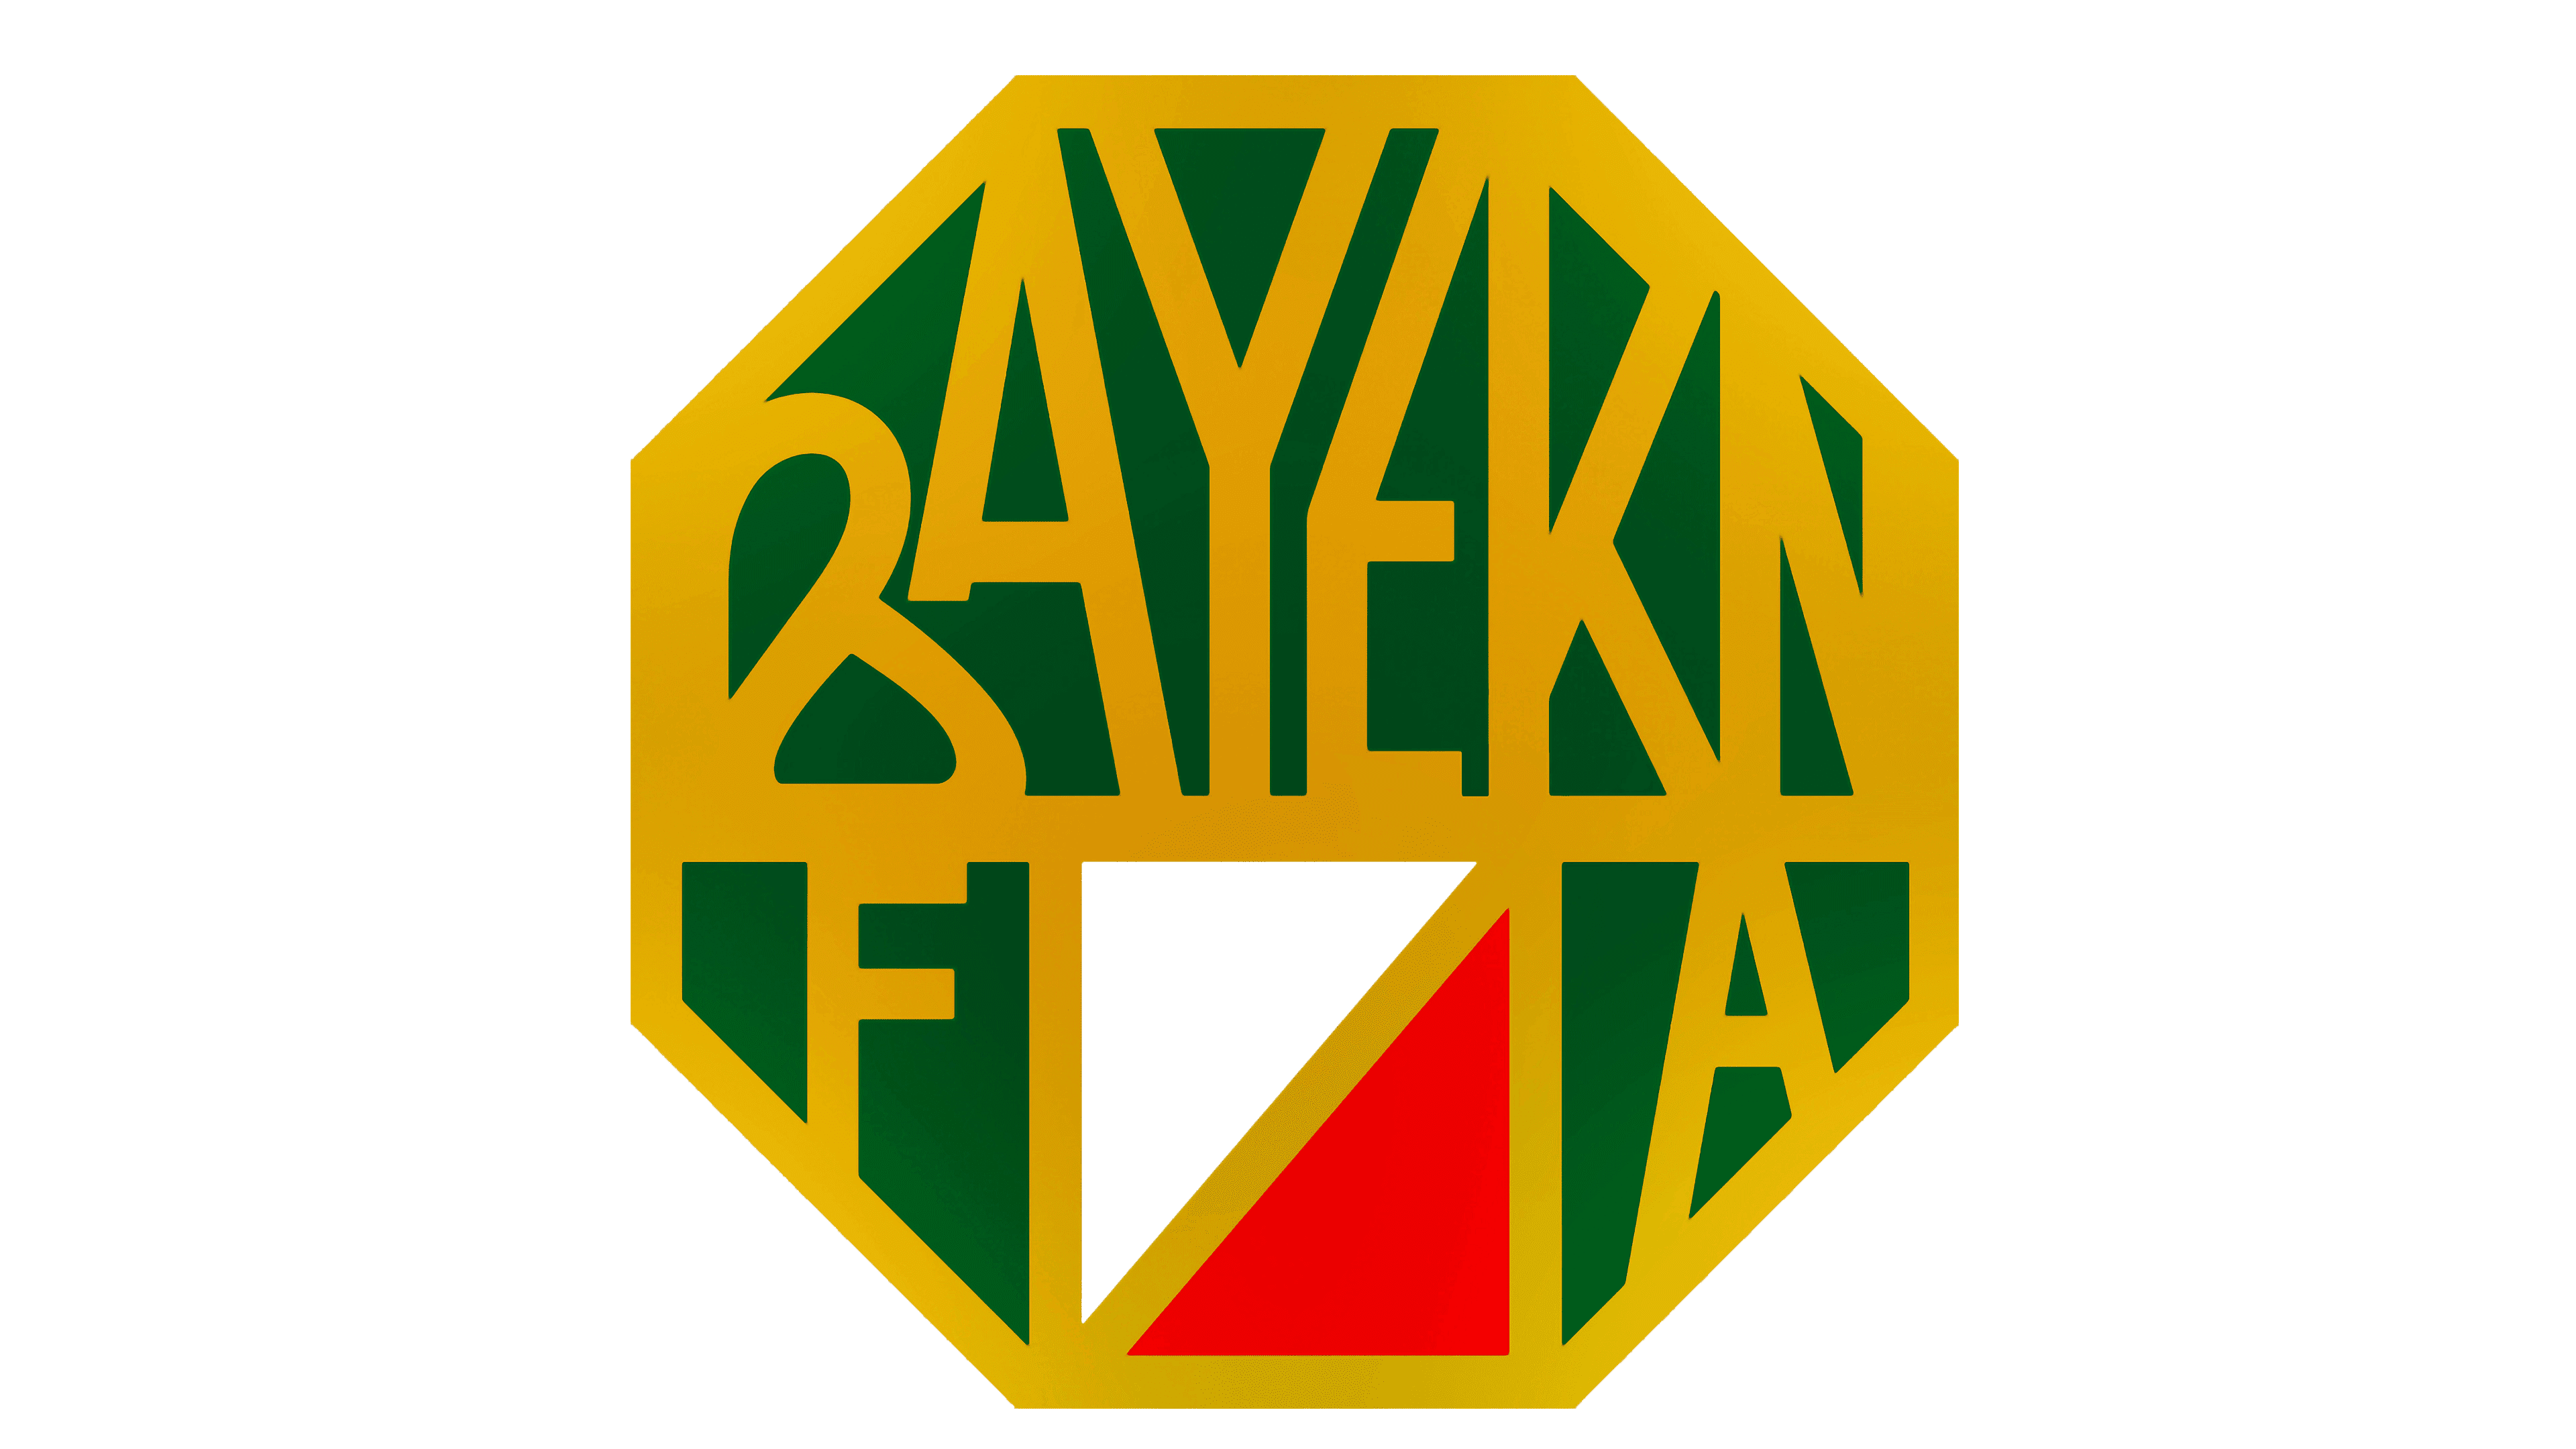 FC Bayern Munchen Logo | The most famous brands and ...